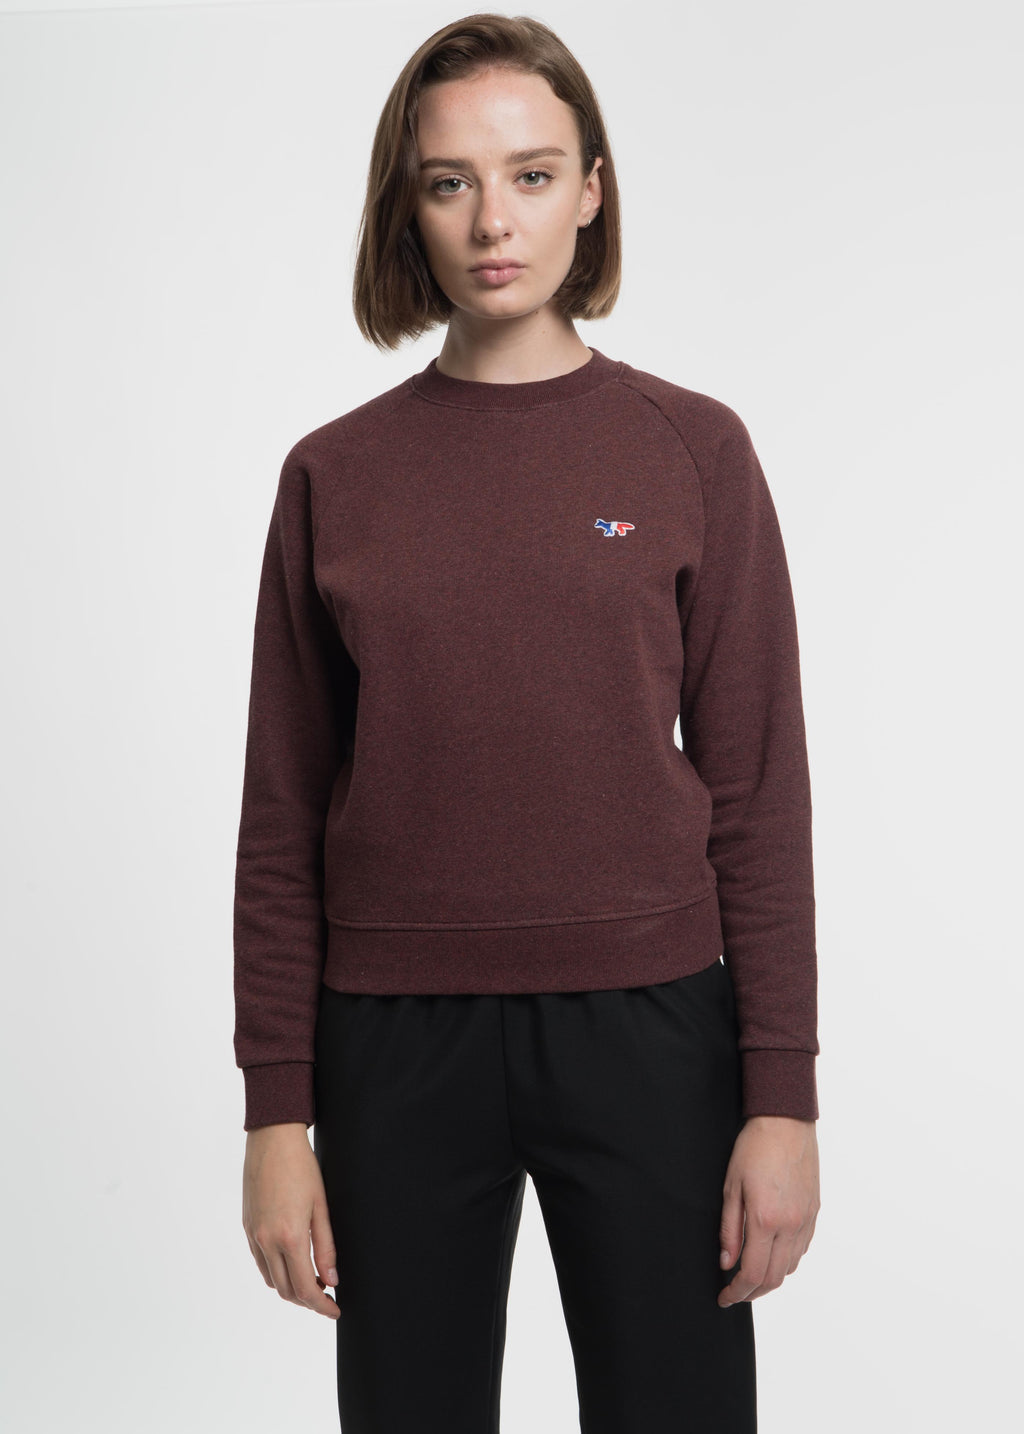 Burgundy Tricolor Fox Sweatshirt